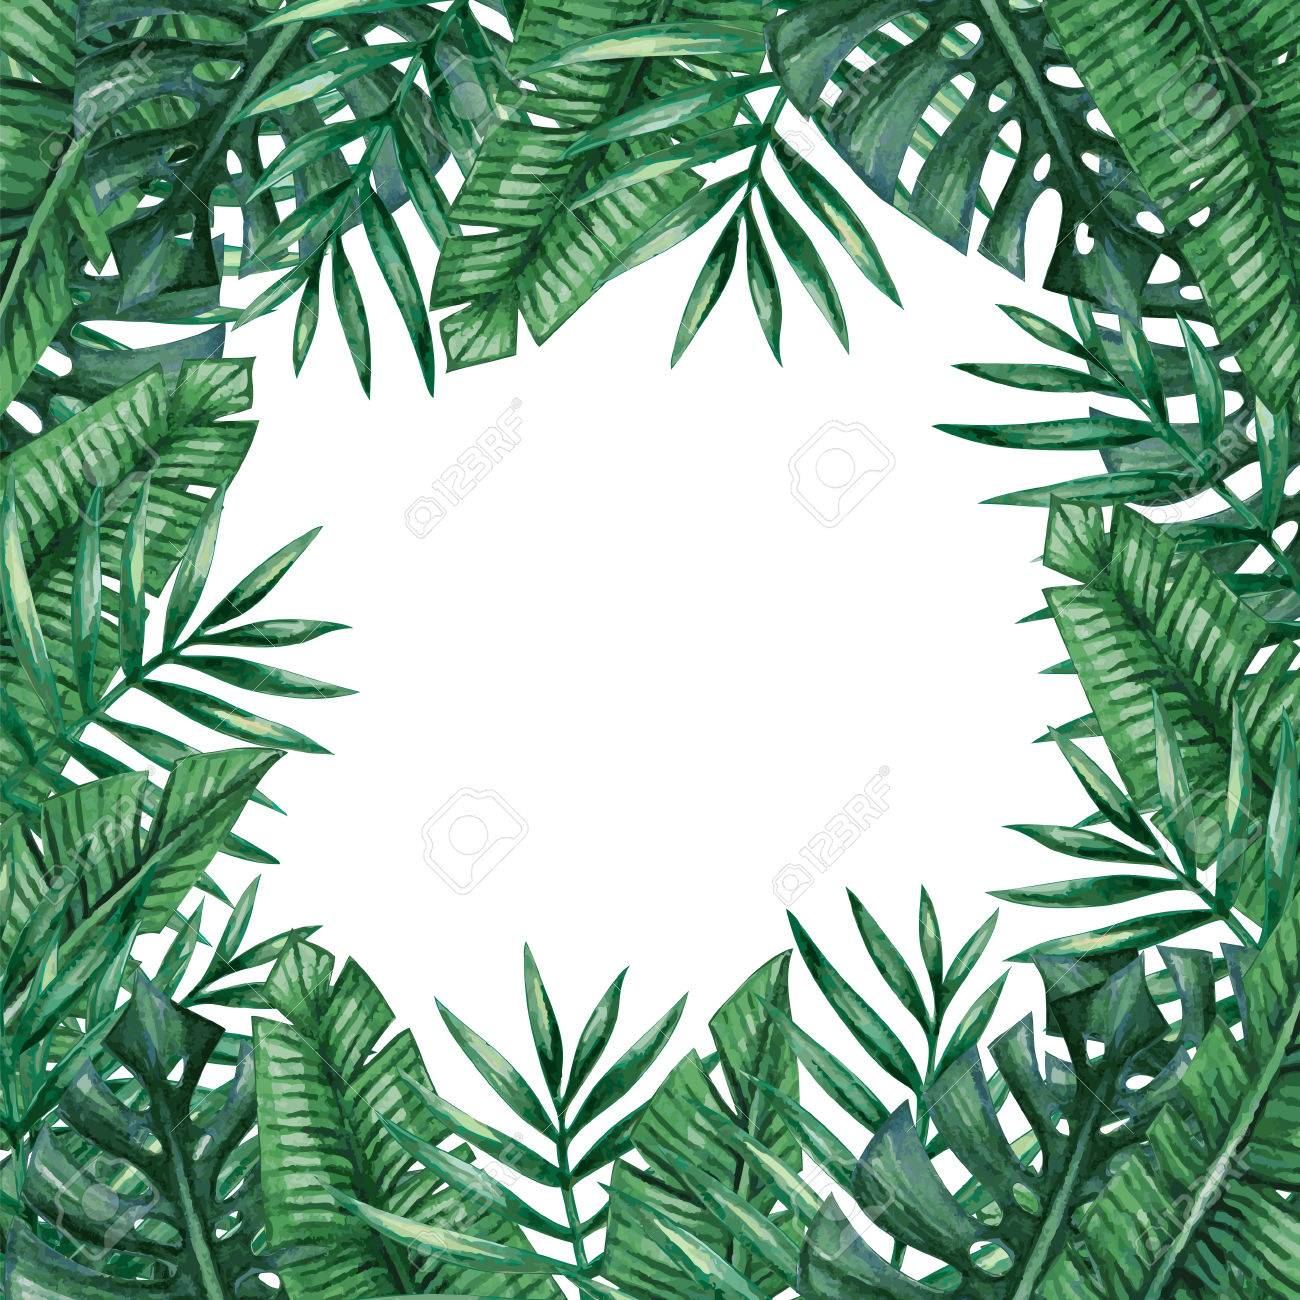 Palm tree leaves background template tropical greeting card palm tree leaves background template tropical greeting card stock vector 62670861 pronofoot35fo Image collections